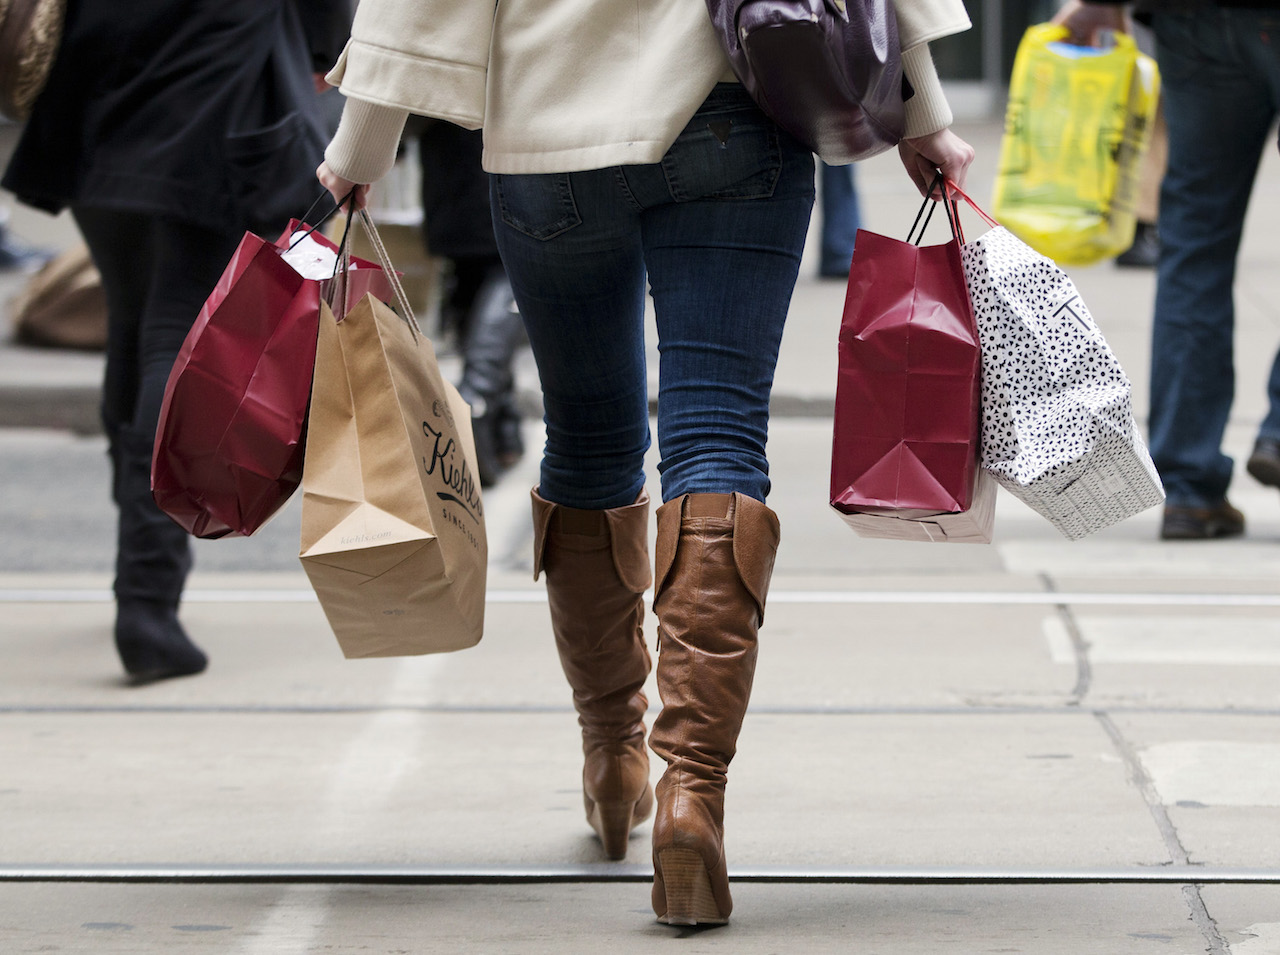 Will consumers be in a 'buying mood' this holiday season?